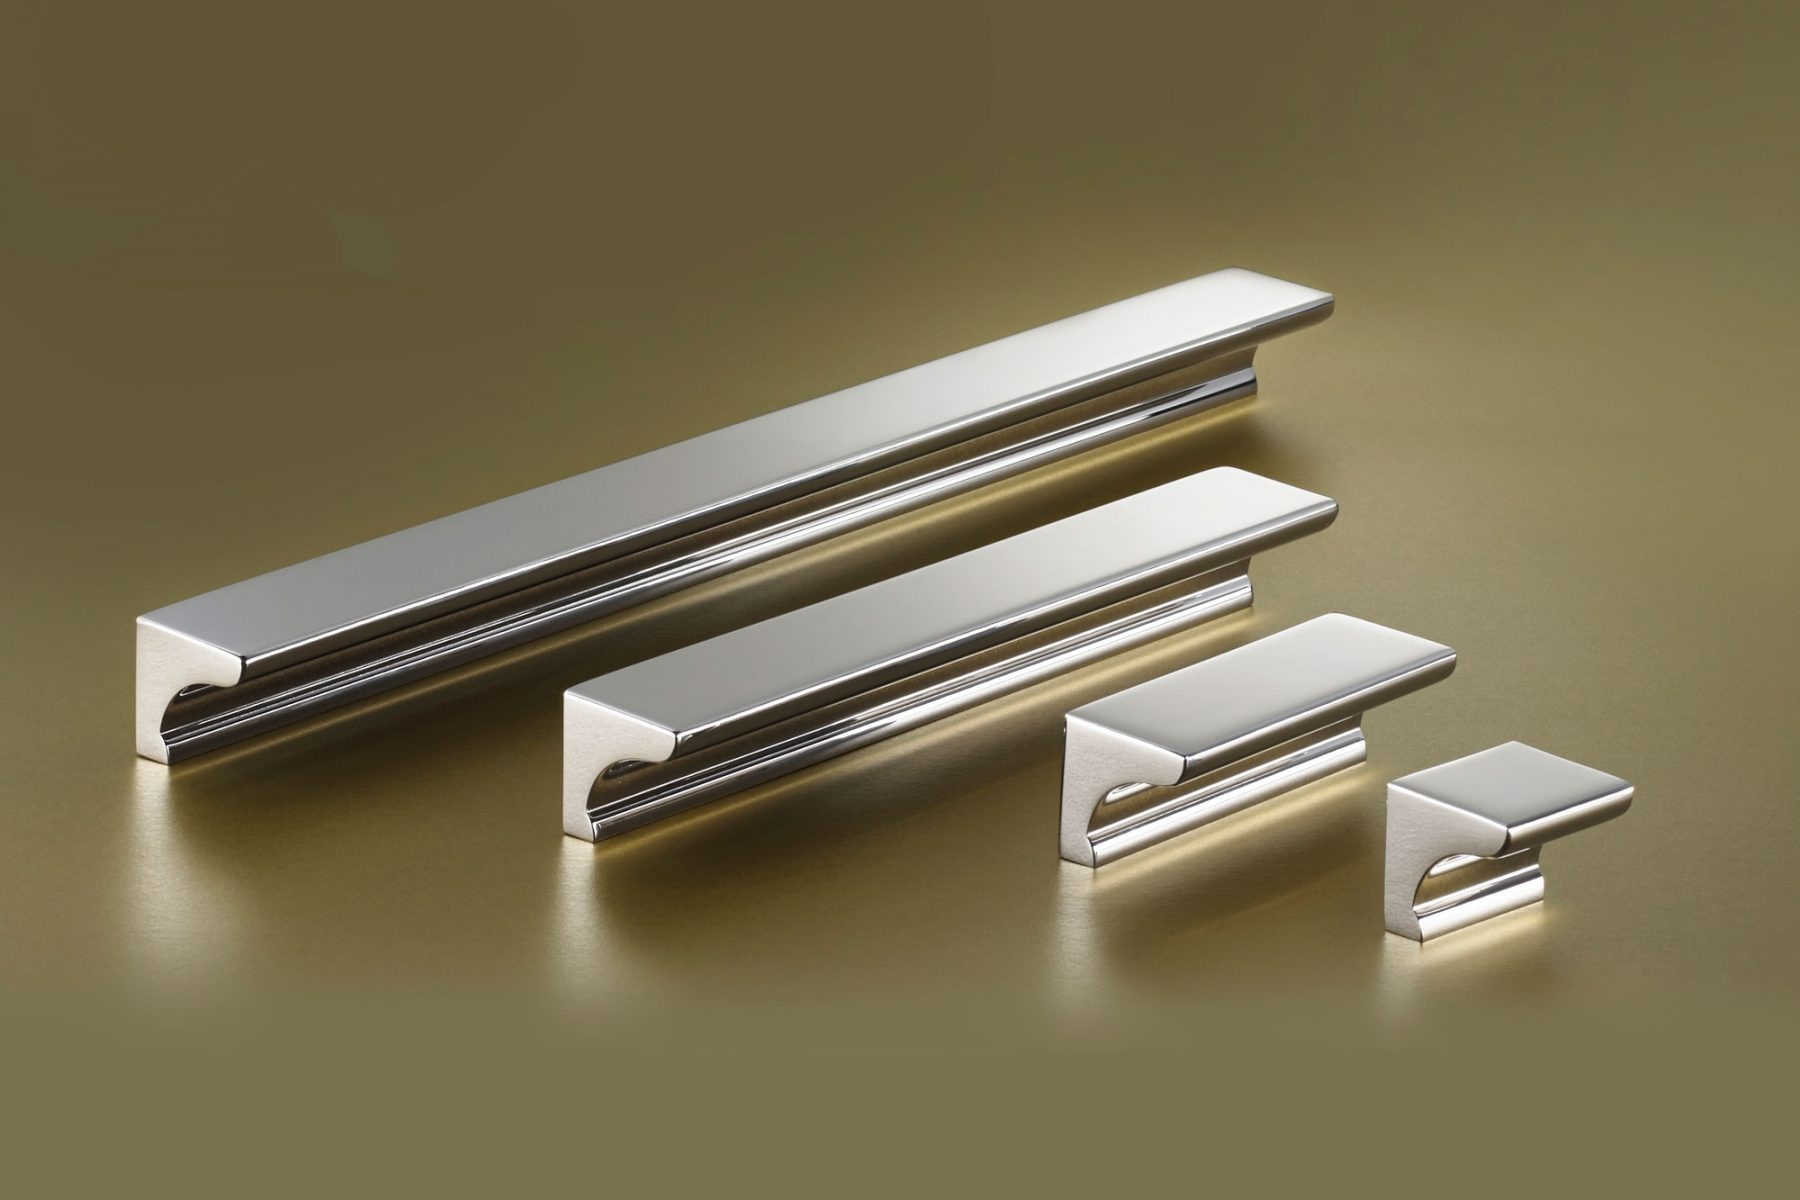 Kitchen drawer pull handle by Armac Martin